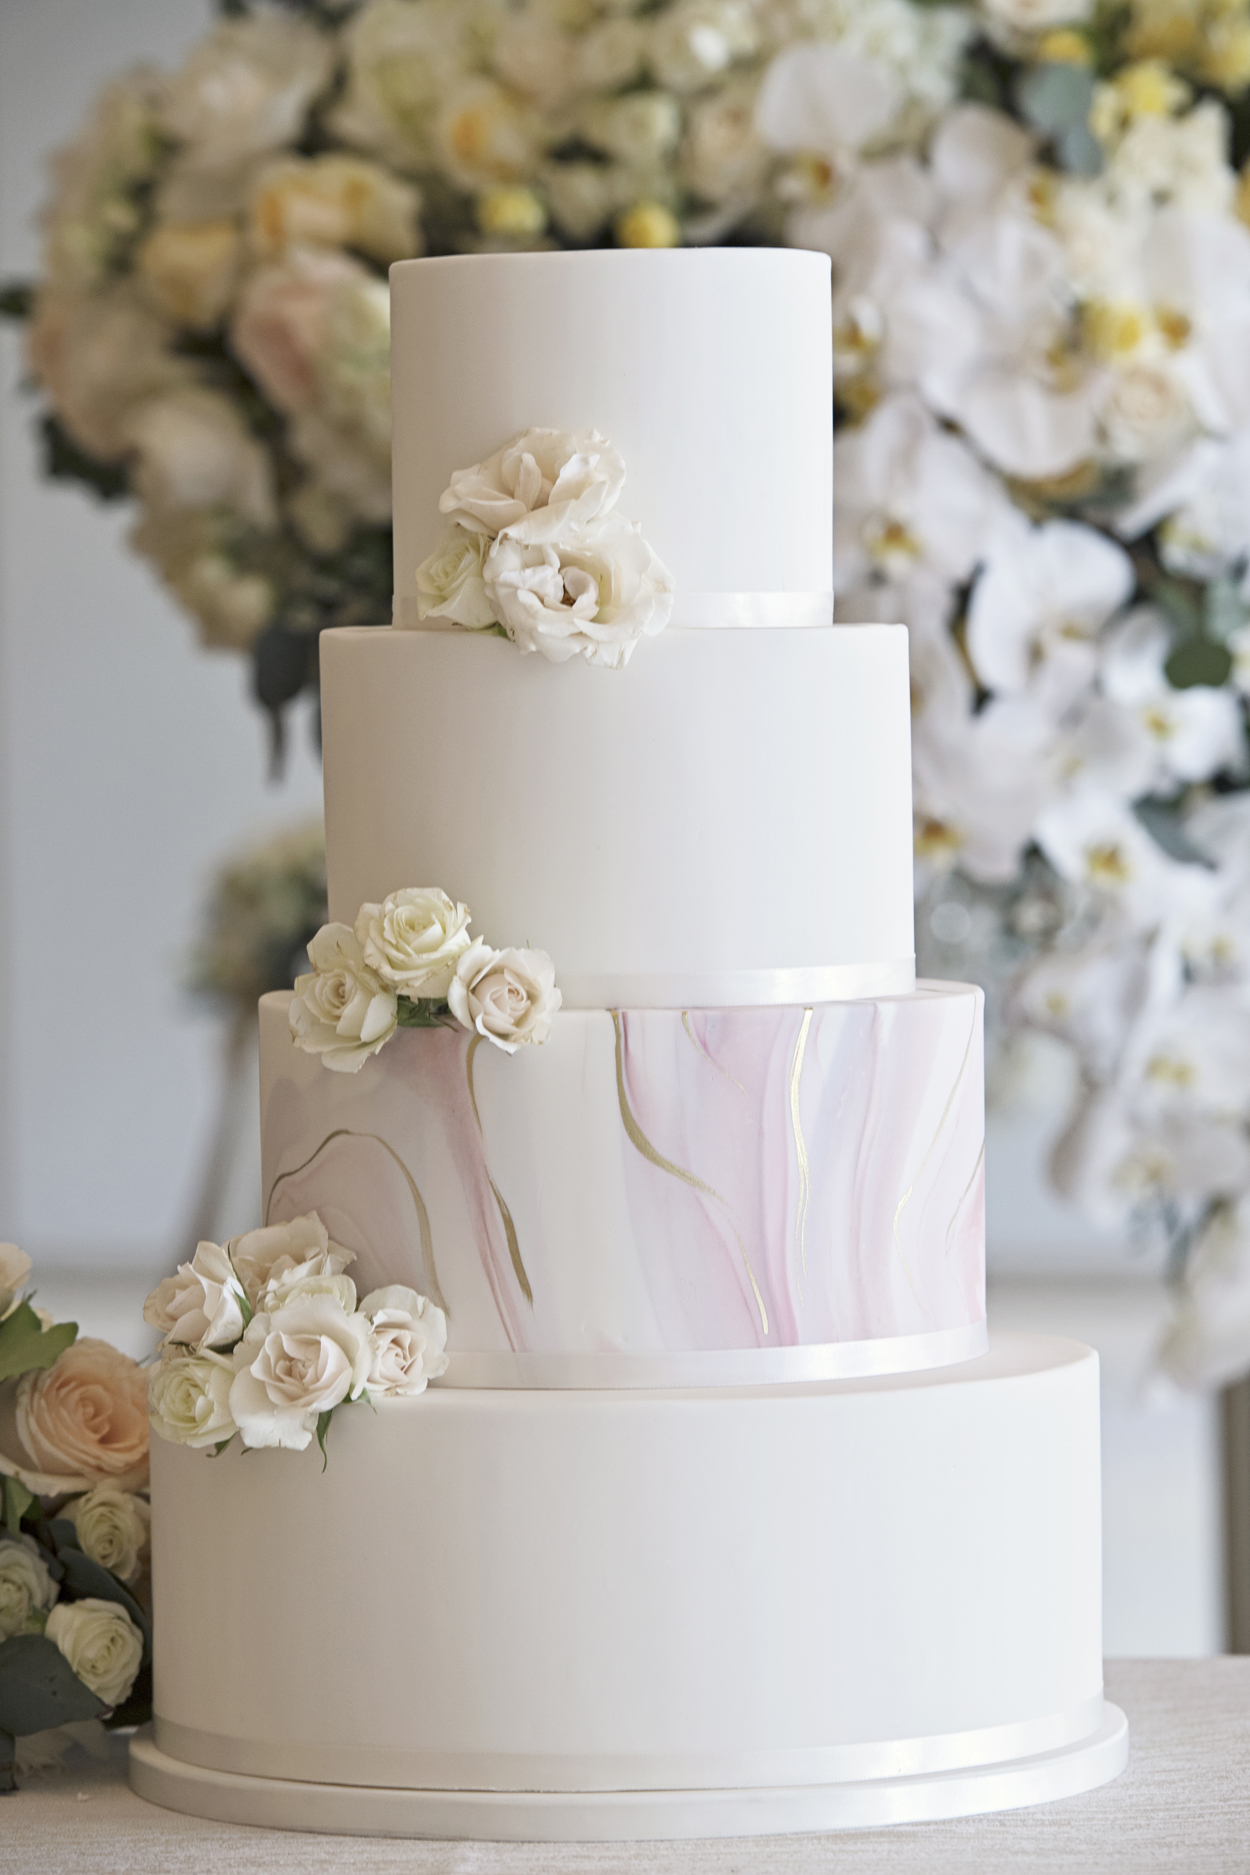 Round fondant white wedding cake with pretty marble layer wedding ideas